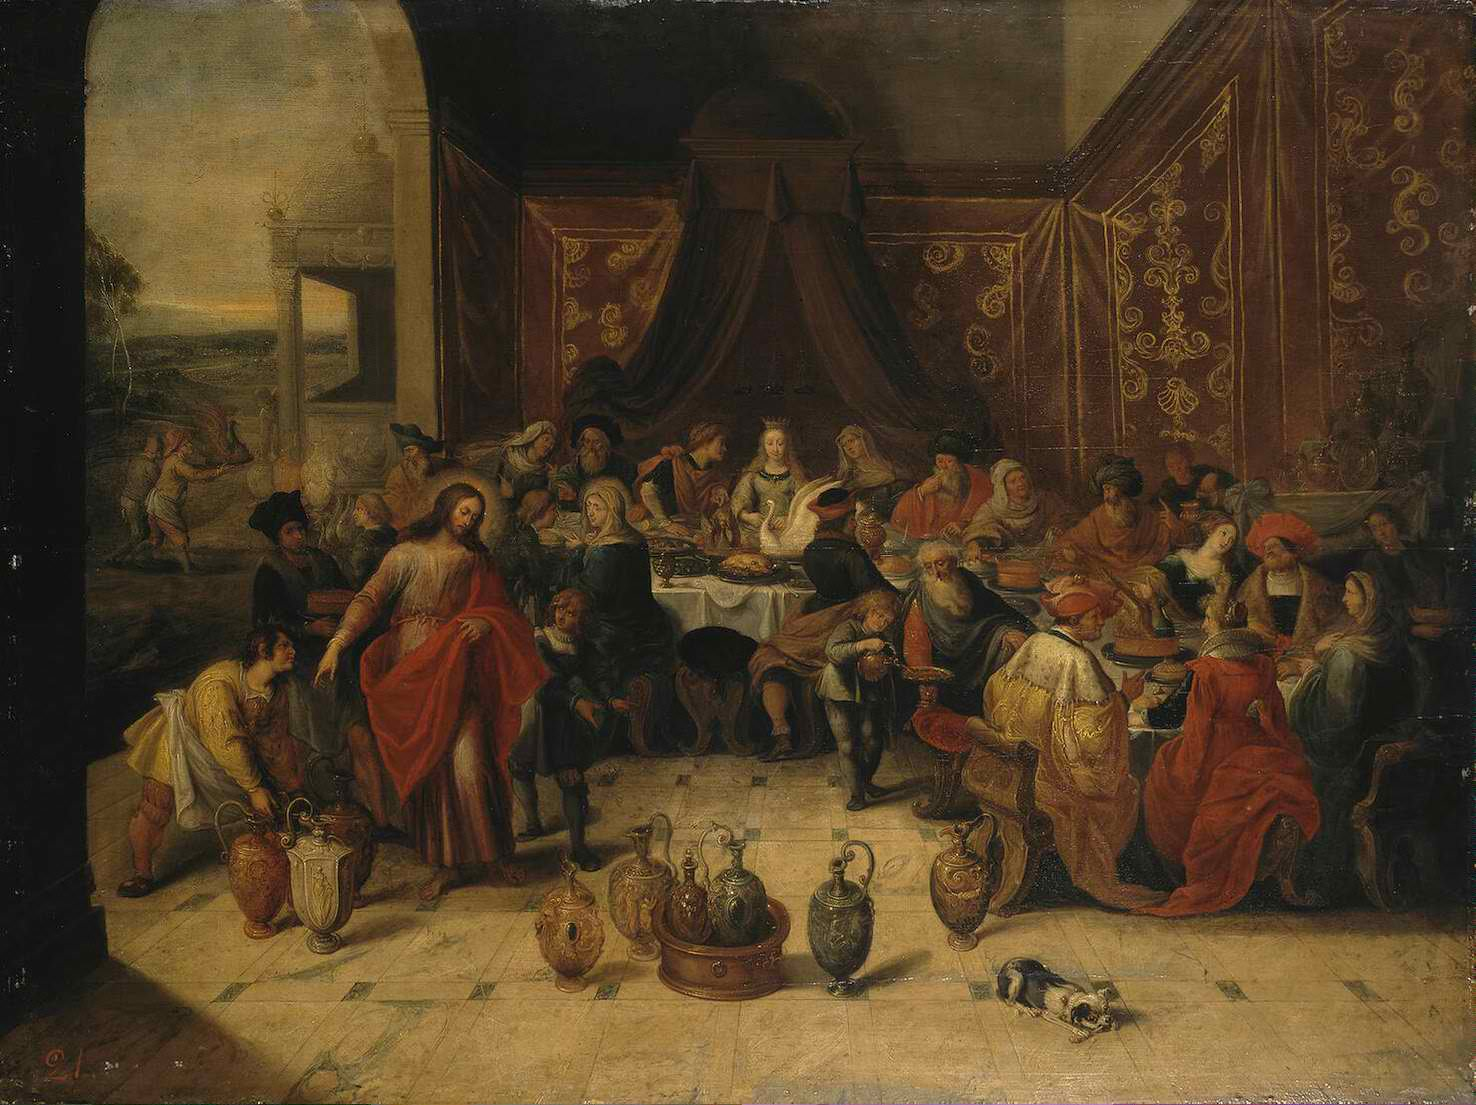 Marriage at Cana by Frans II Francken, 1630s